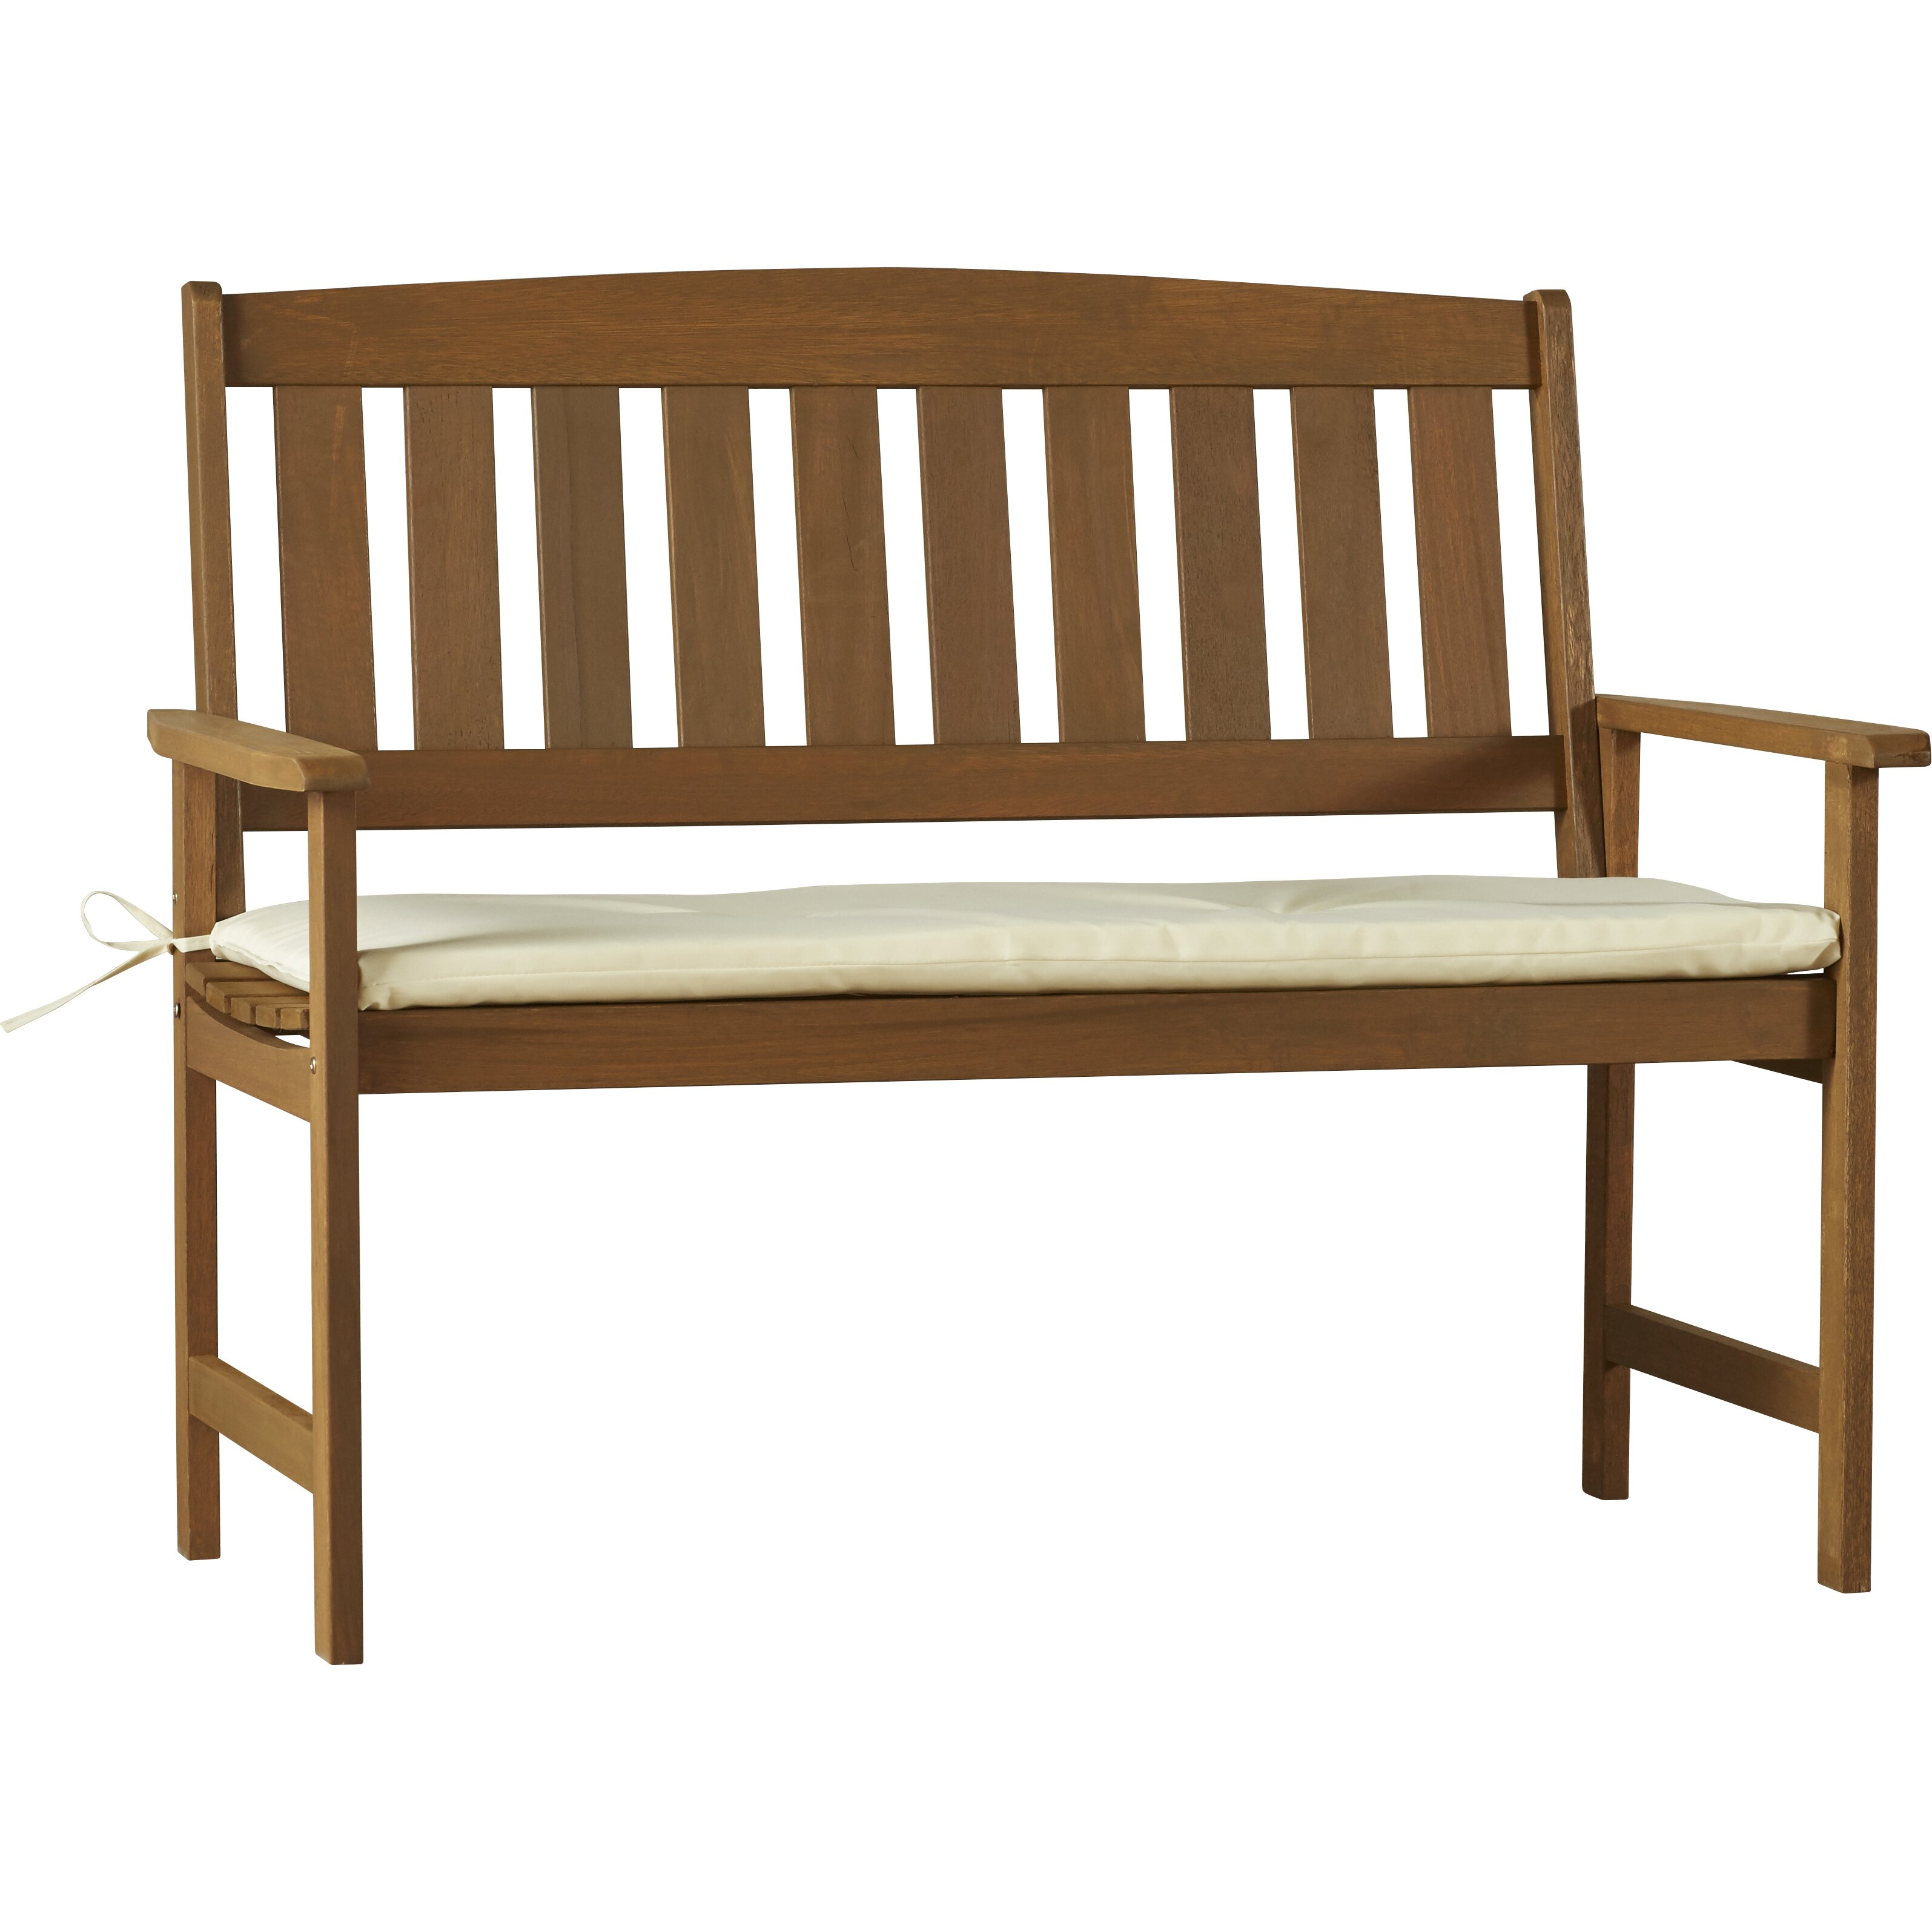 Charlton Home Lollie Wood 4 Piece Bench Seating Group With Cushion Reviews Wayfair